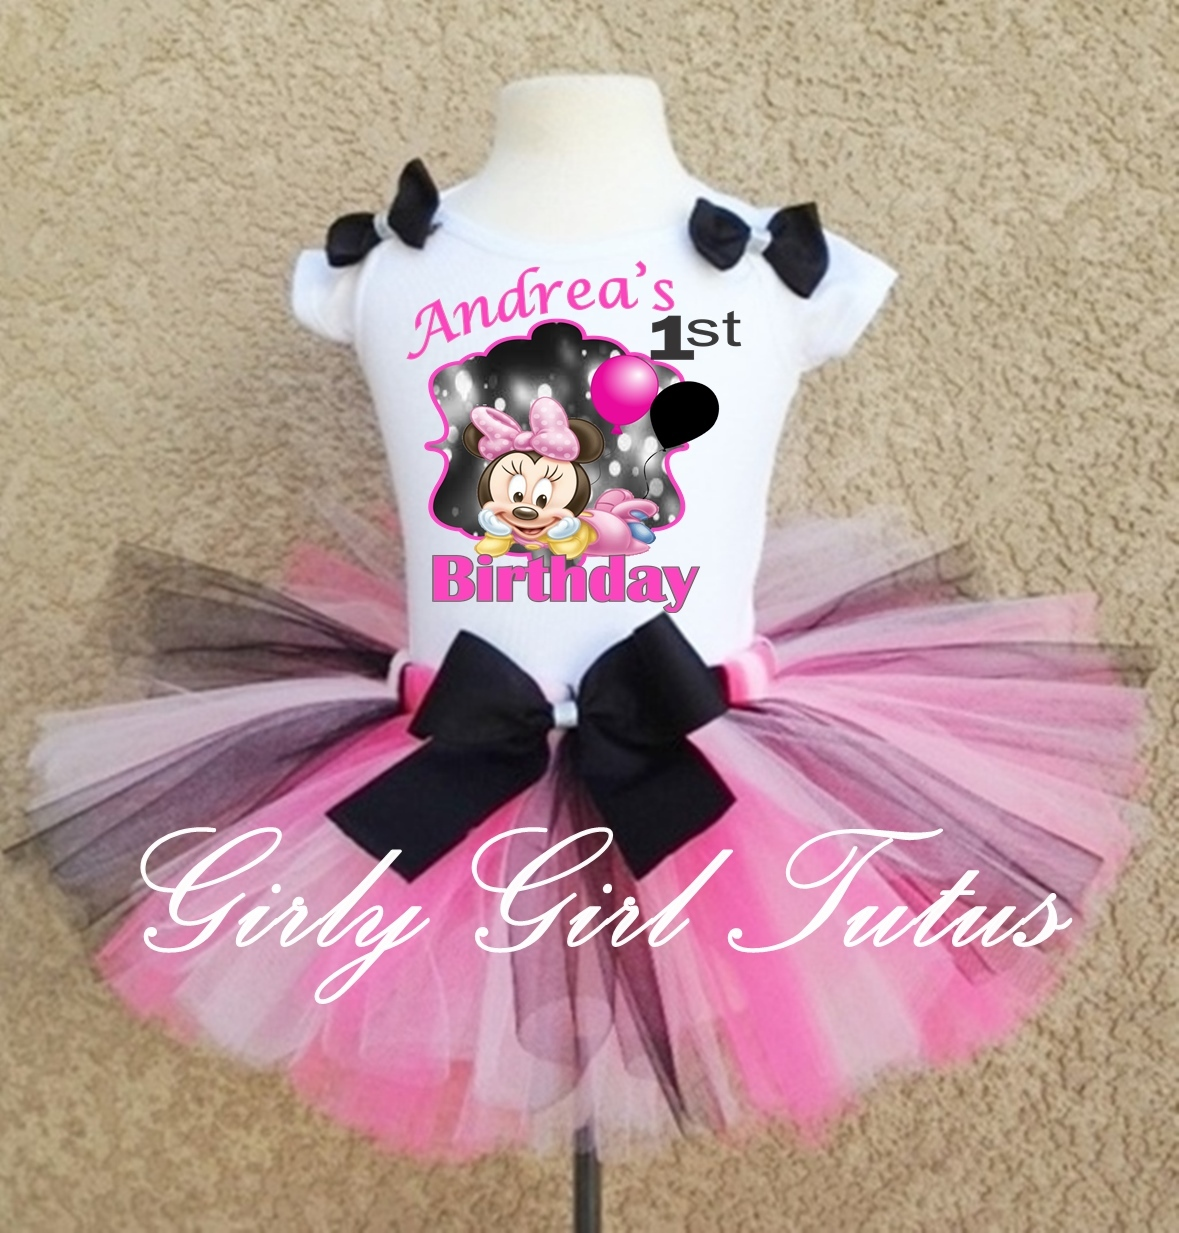 64b59b435d59b Minniemouse1stbirthdayoutfit33. Minniemouse1stbirthdayoutfit33. Girls  Minnie Mouse Black/Pink 1st and 2nd Birthday Party Tutu Outfit Dress Set